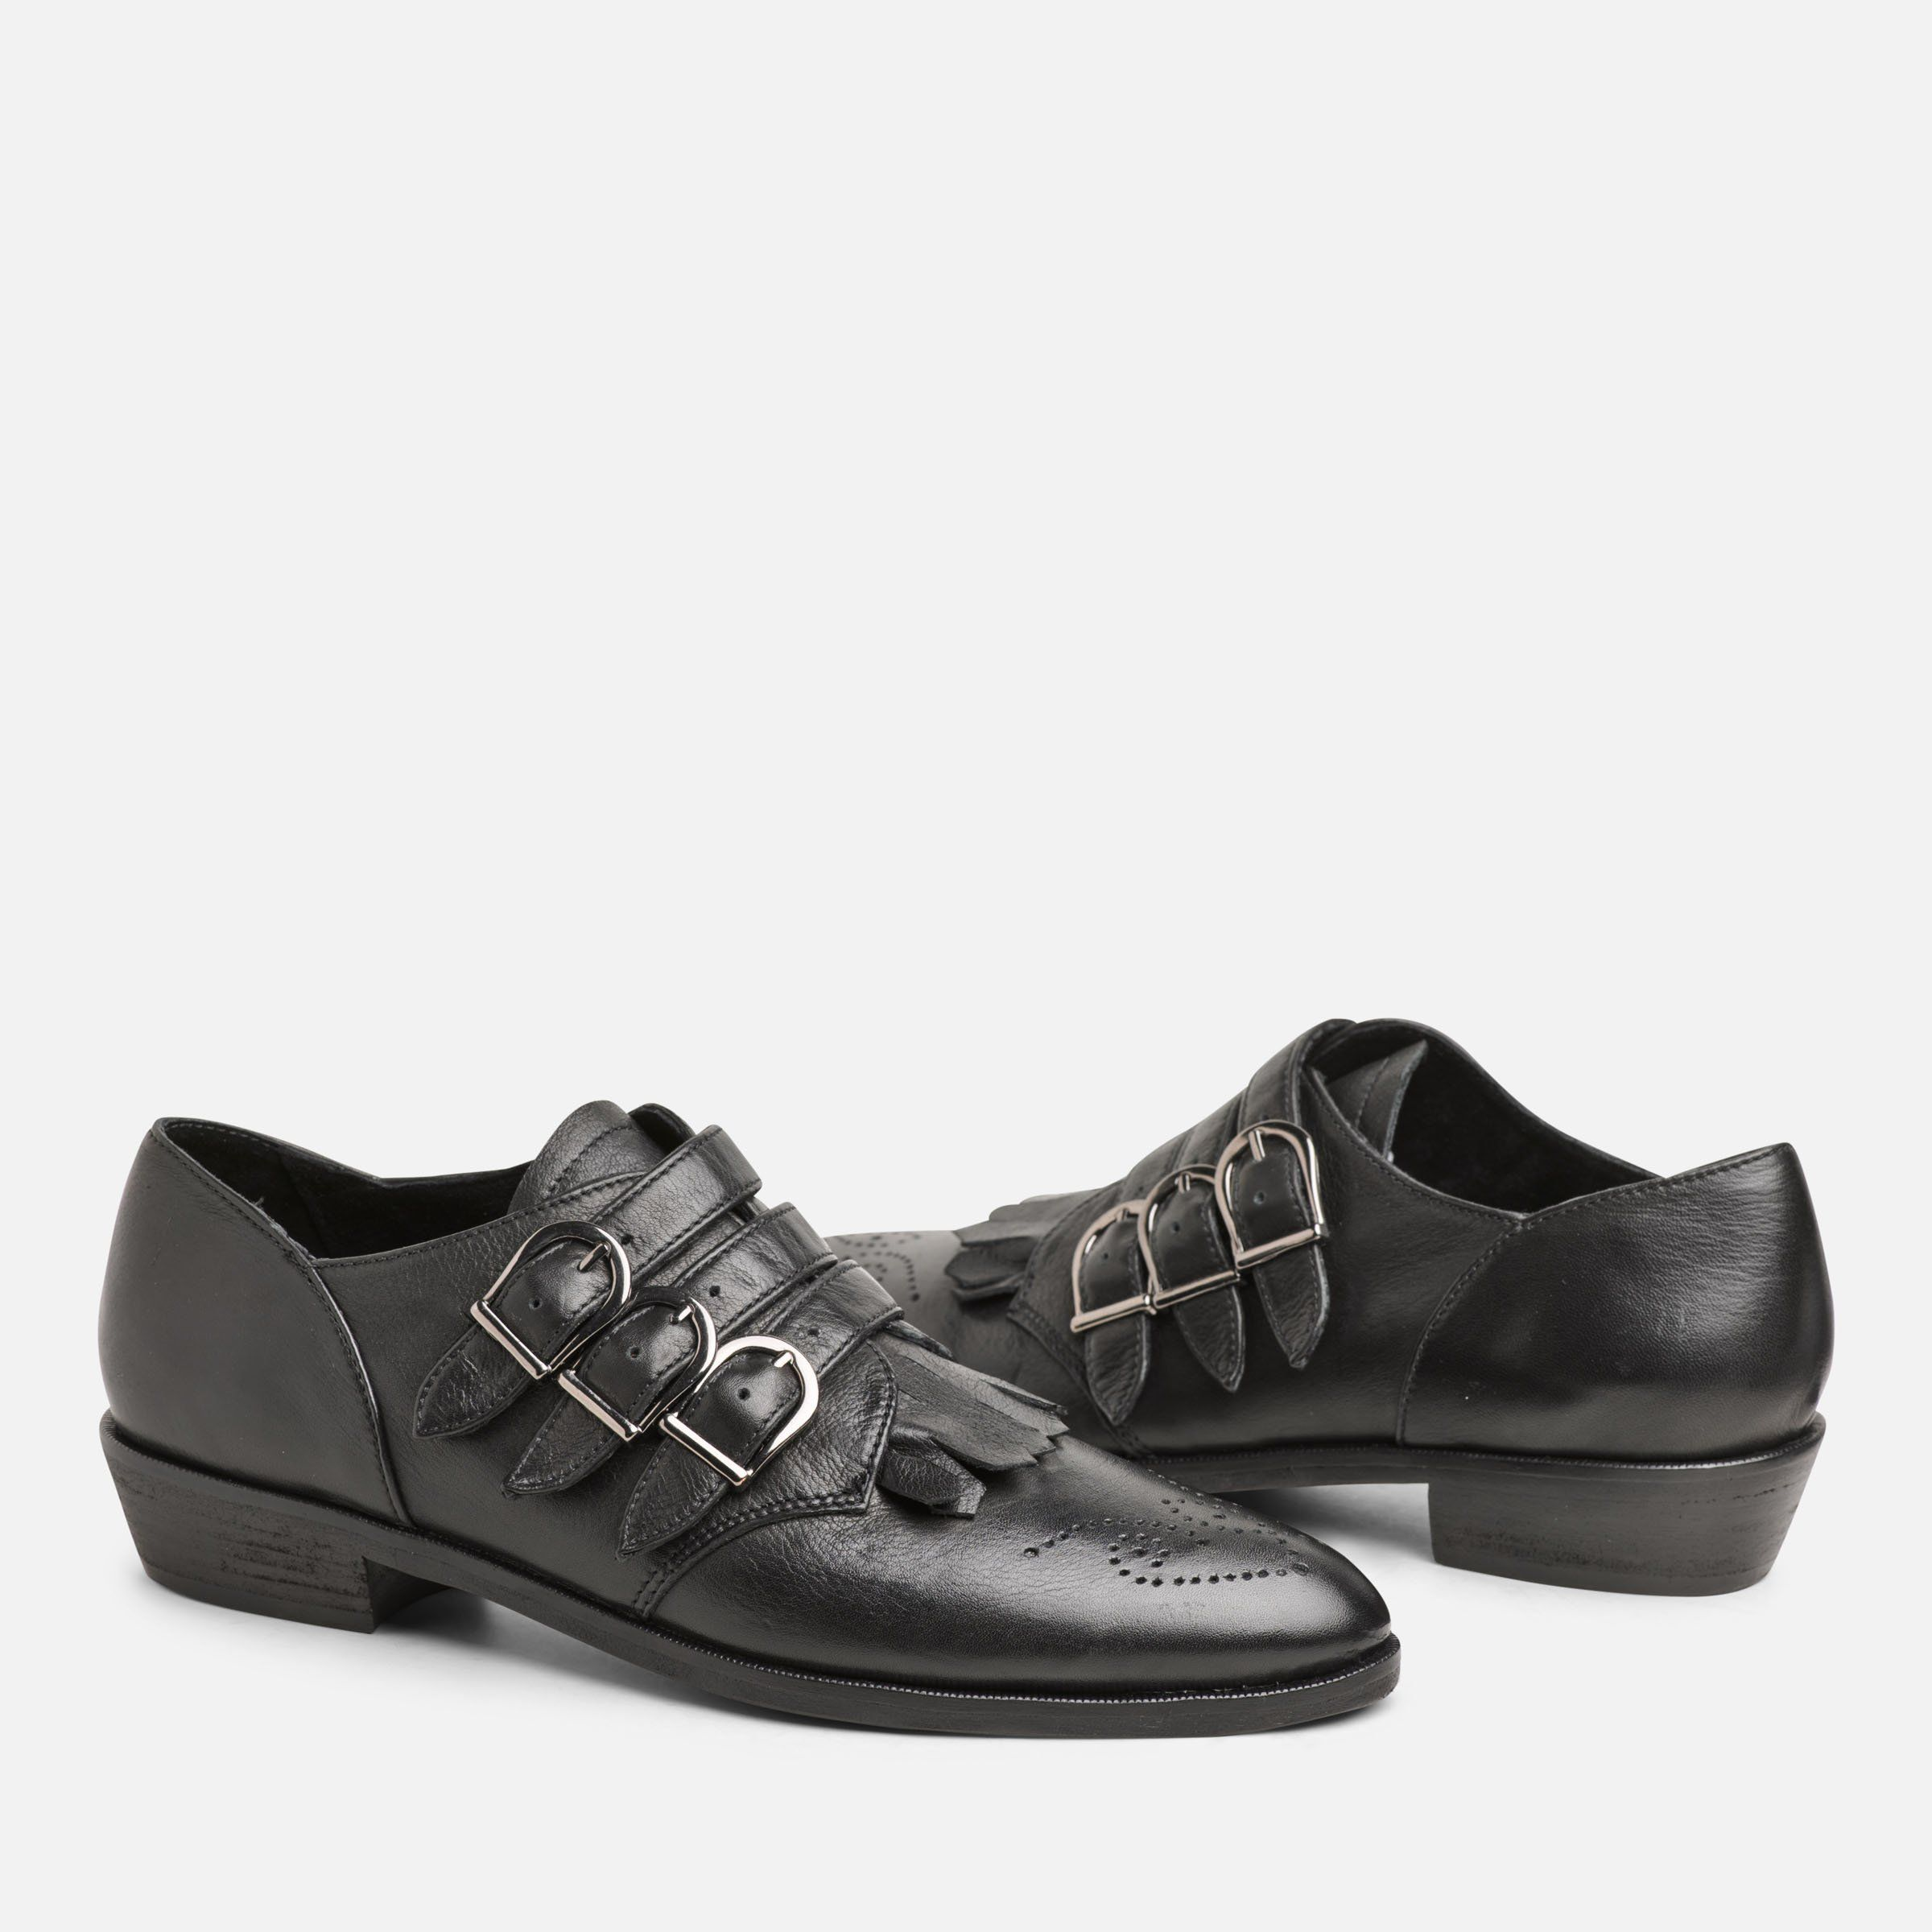 JETT SHOE BLACK